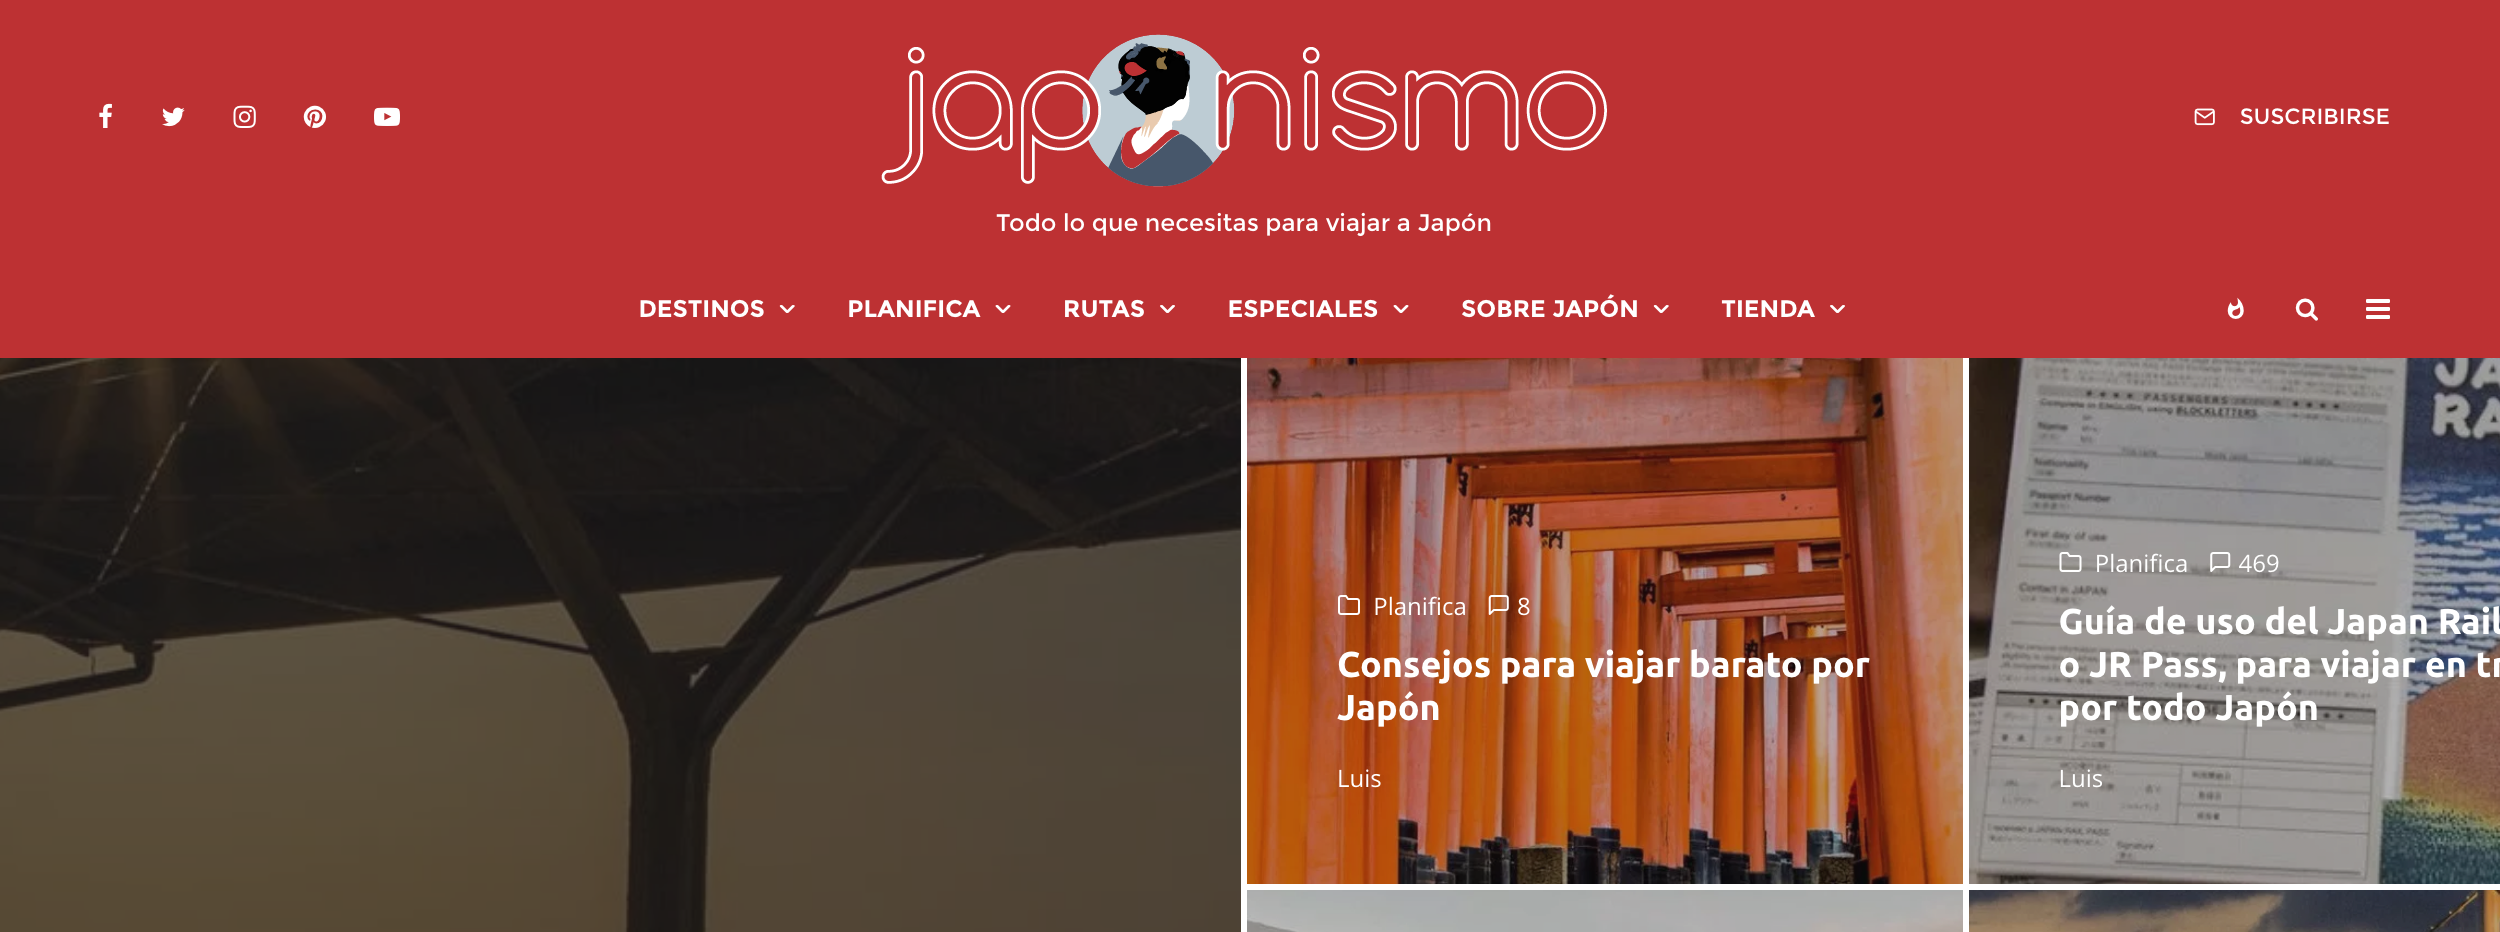 japonismo marketing de contenidos